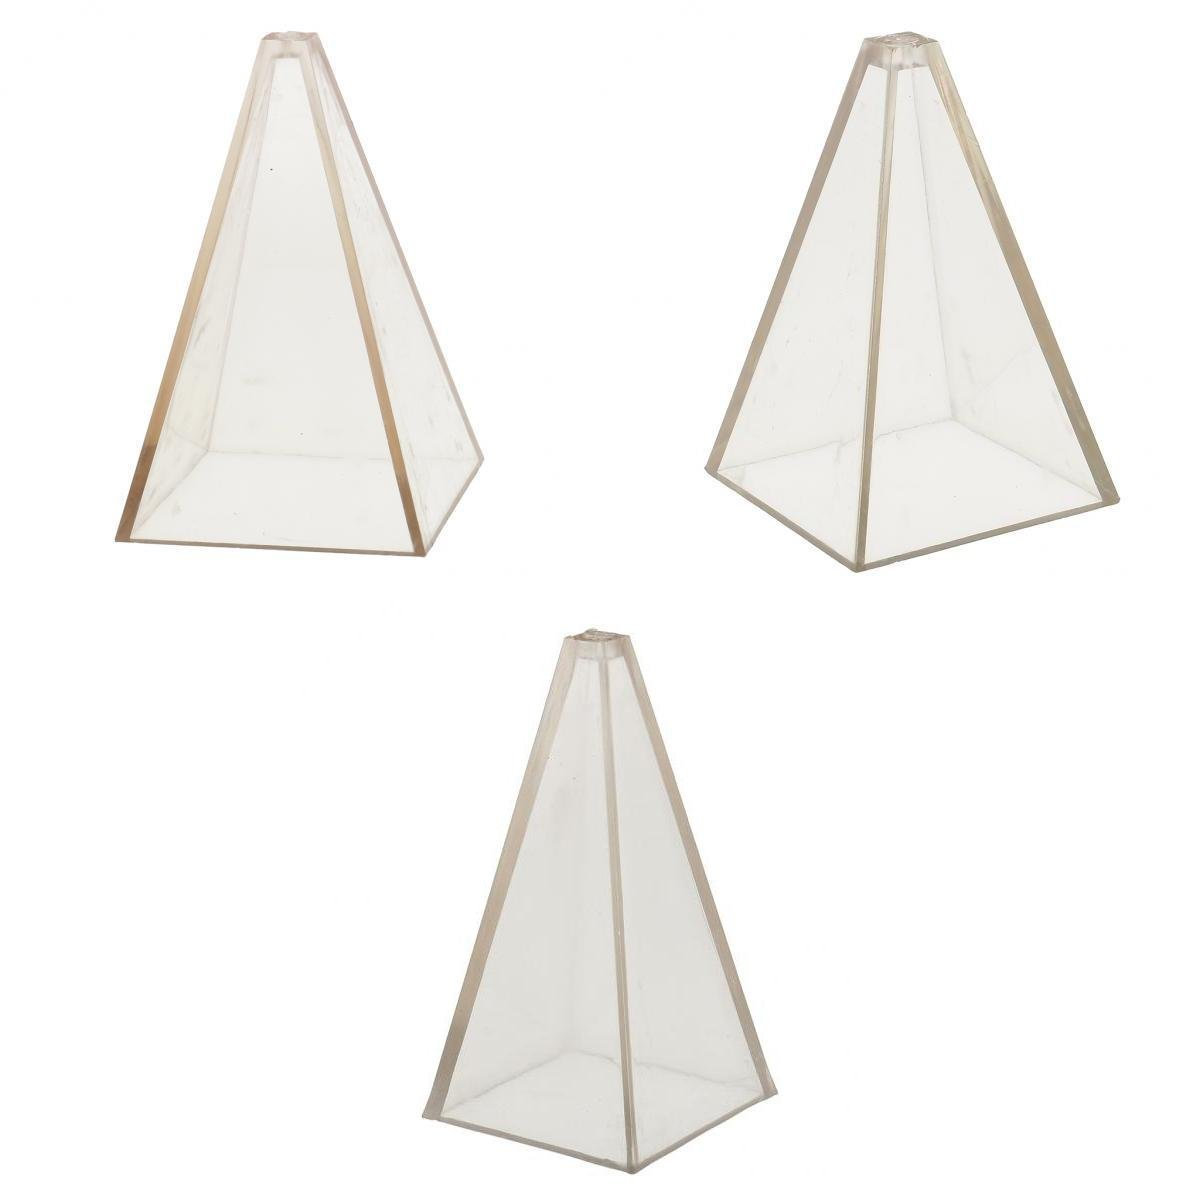 MagiDeal 3 Sizes Candle Moulds Pyramid Shape PC Plastic Material Handcrafts DIY